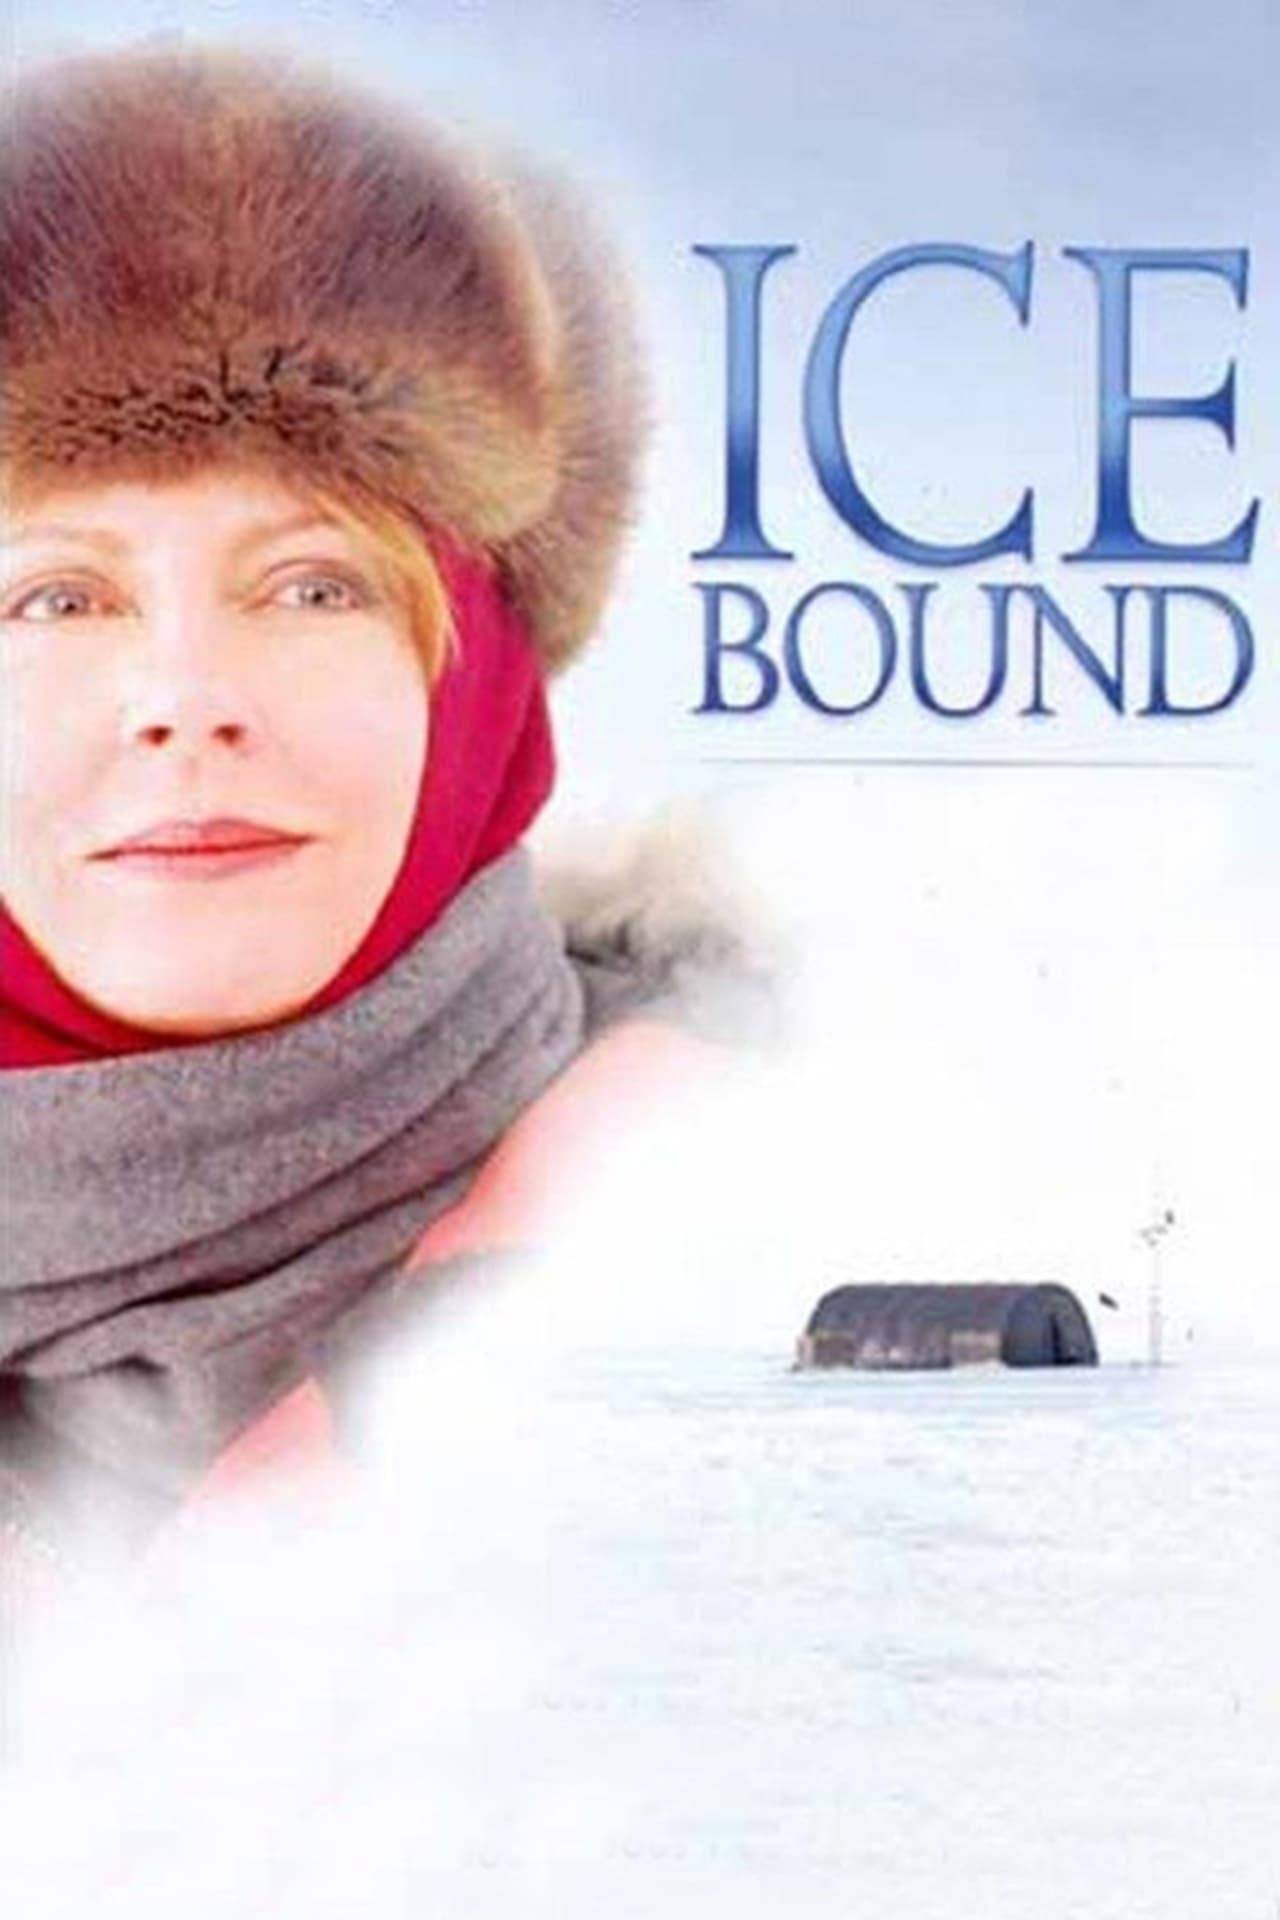 Ice Bound - A Woman's Survival at the South Pole